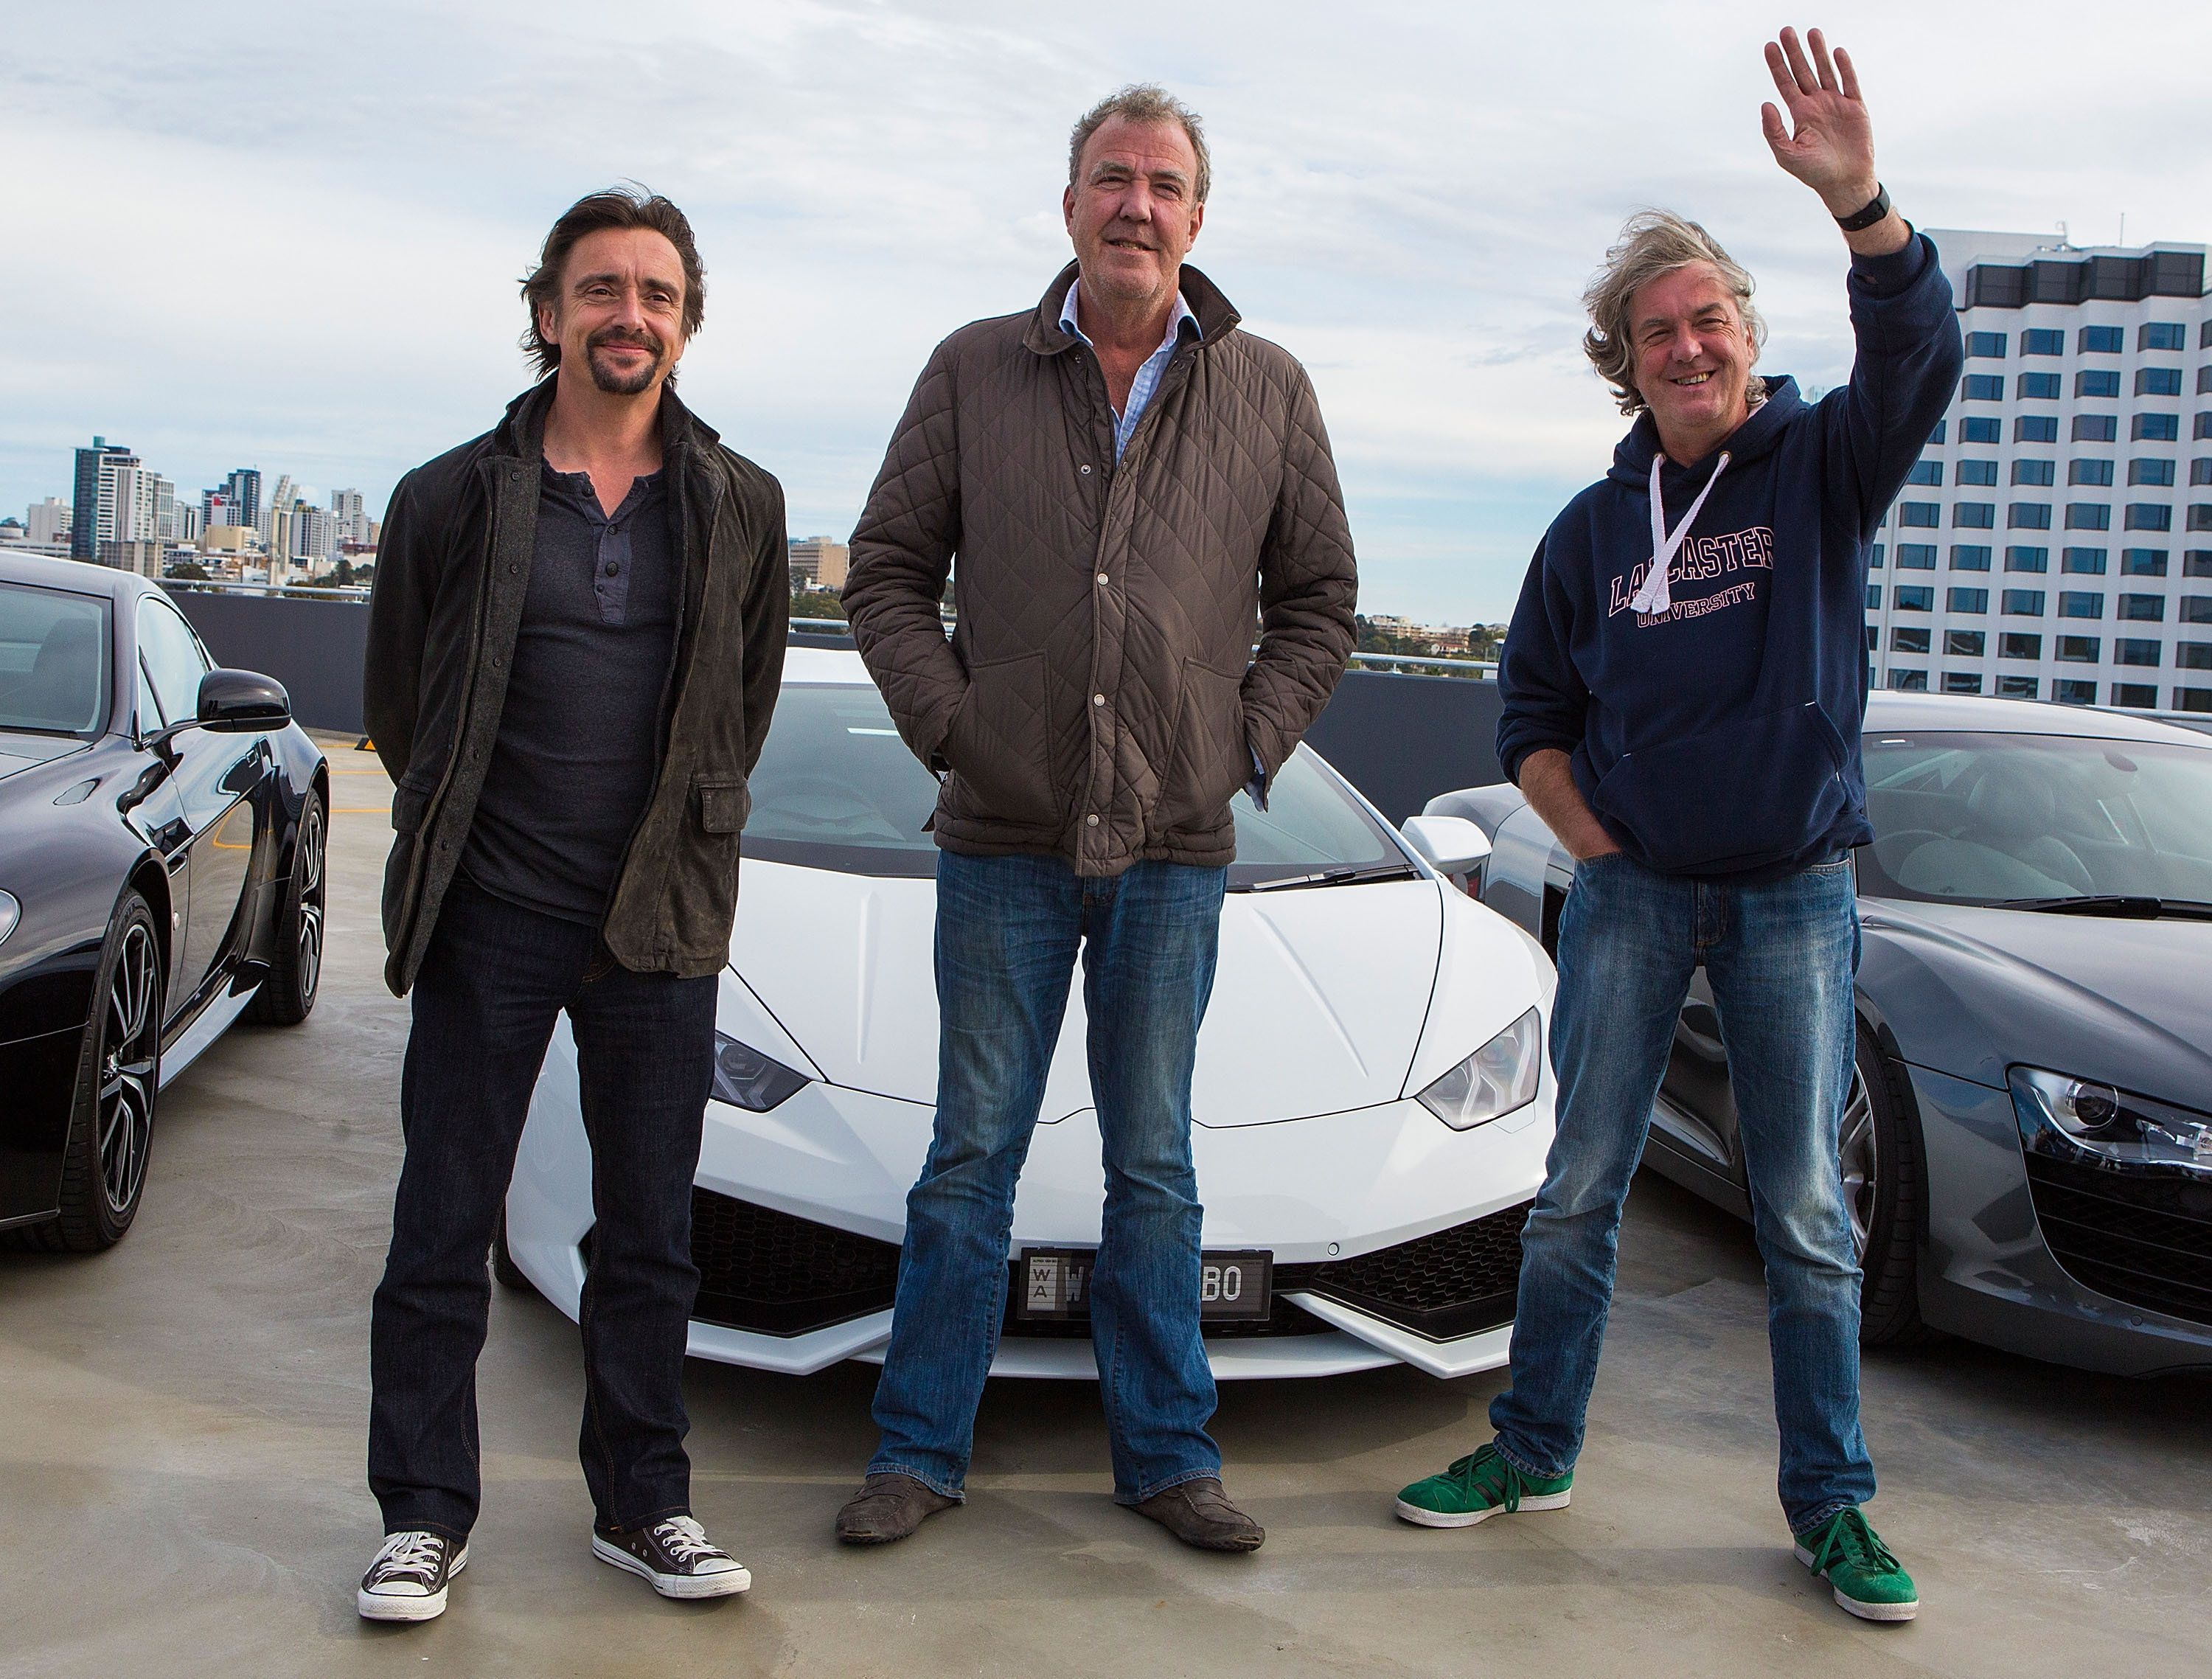 'Top Gear' Fans Are Going To Love The Latest Teaser For Clarkson's New